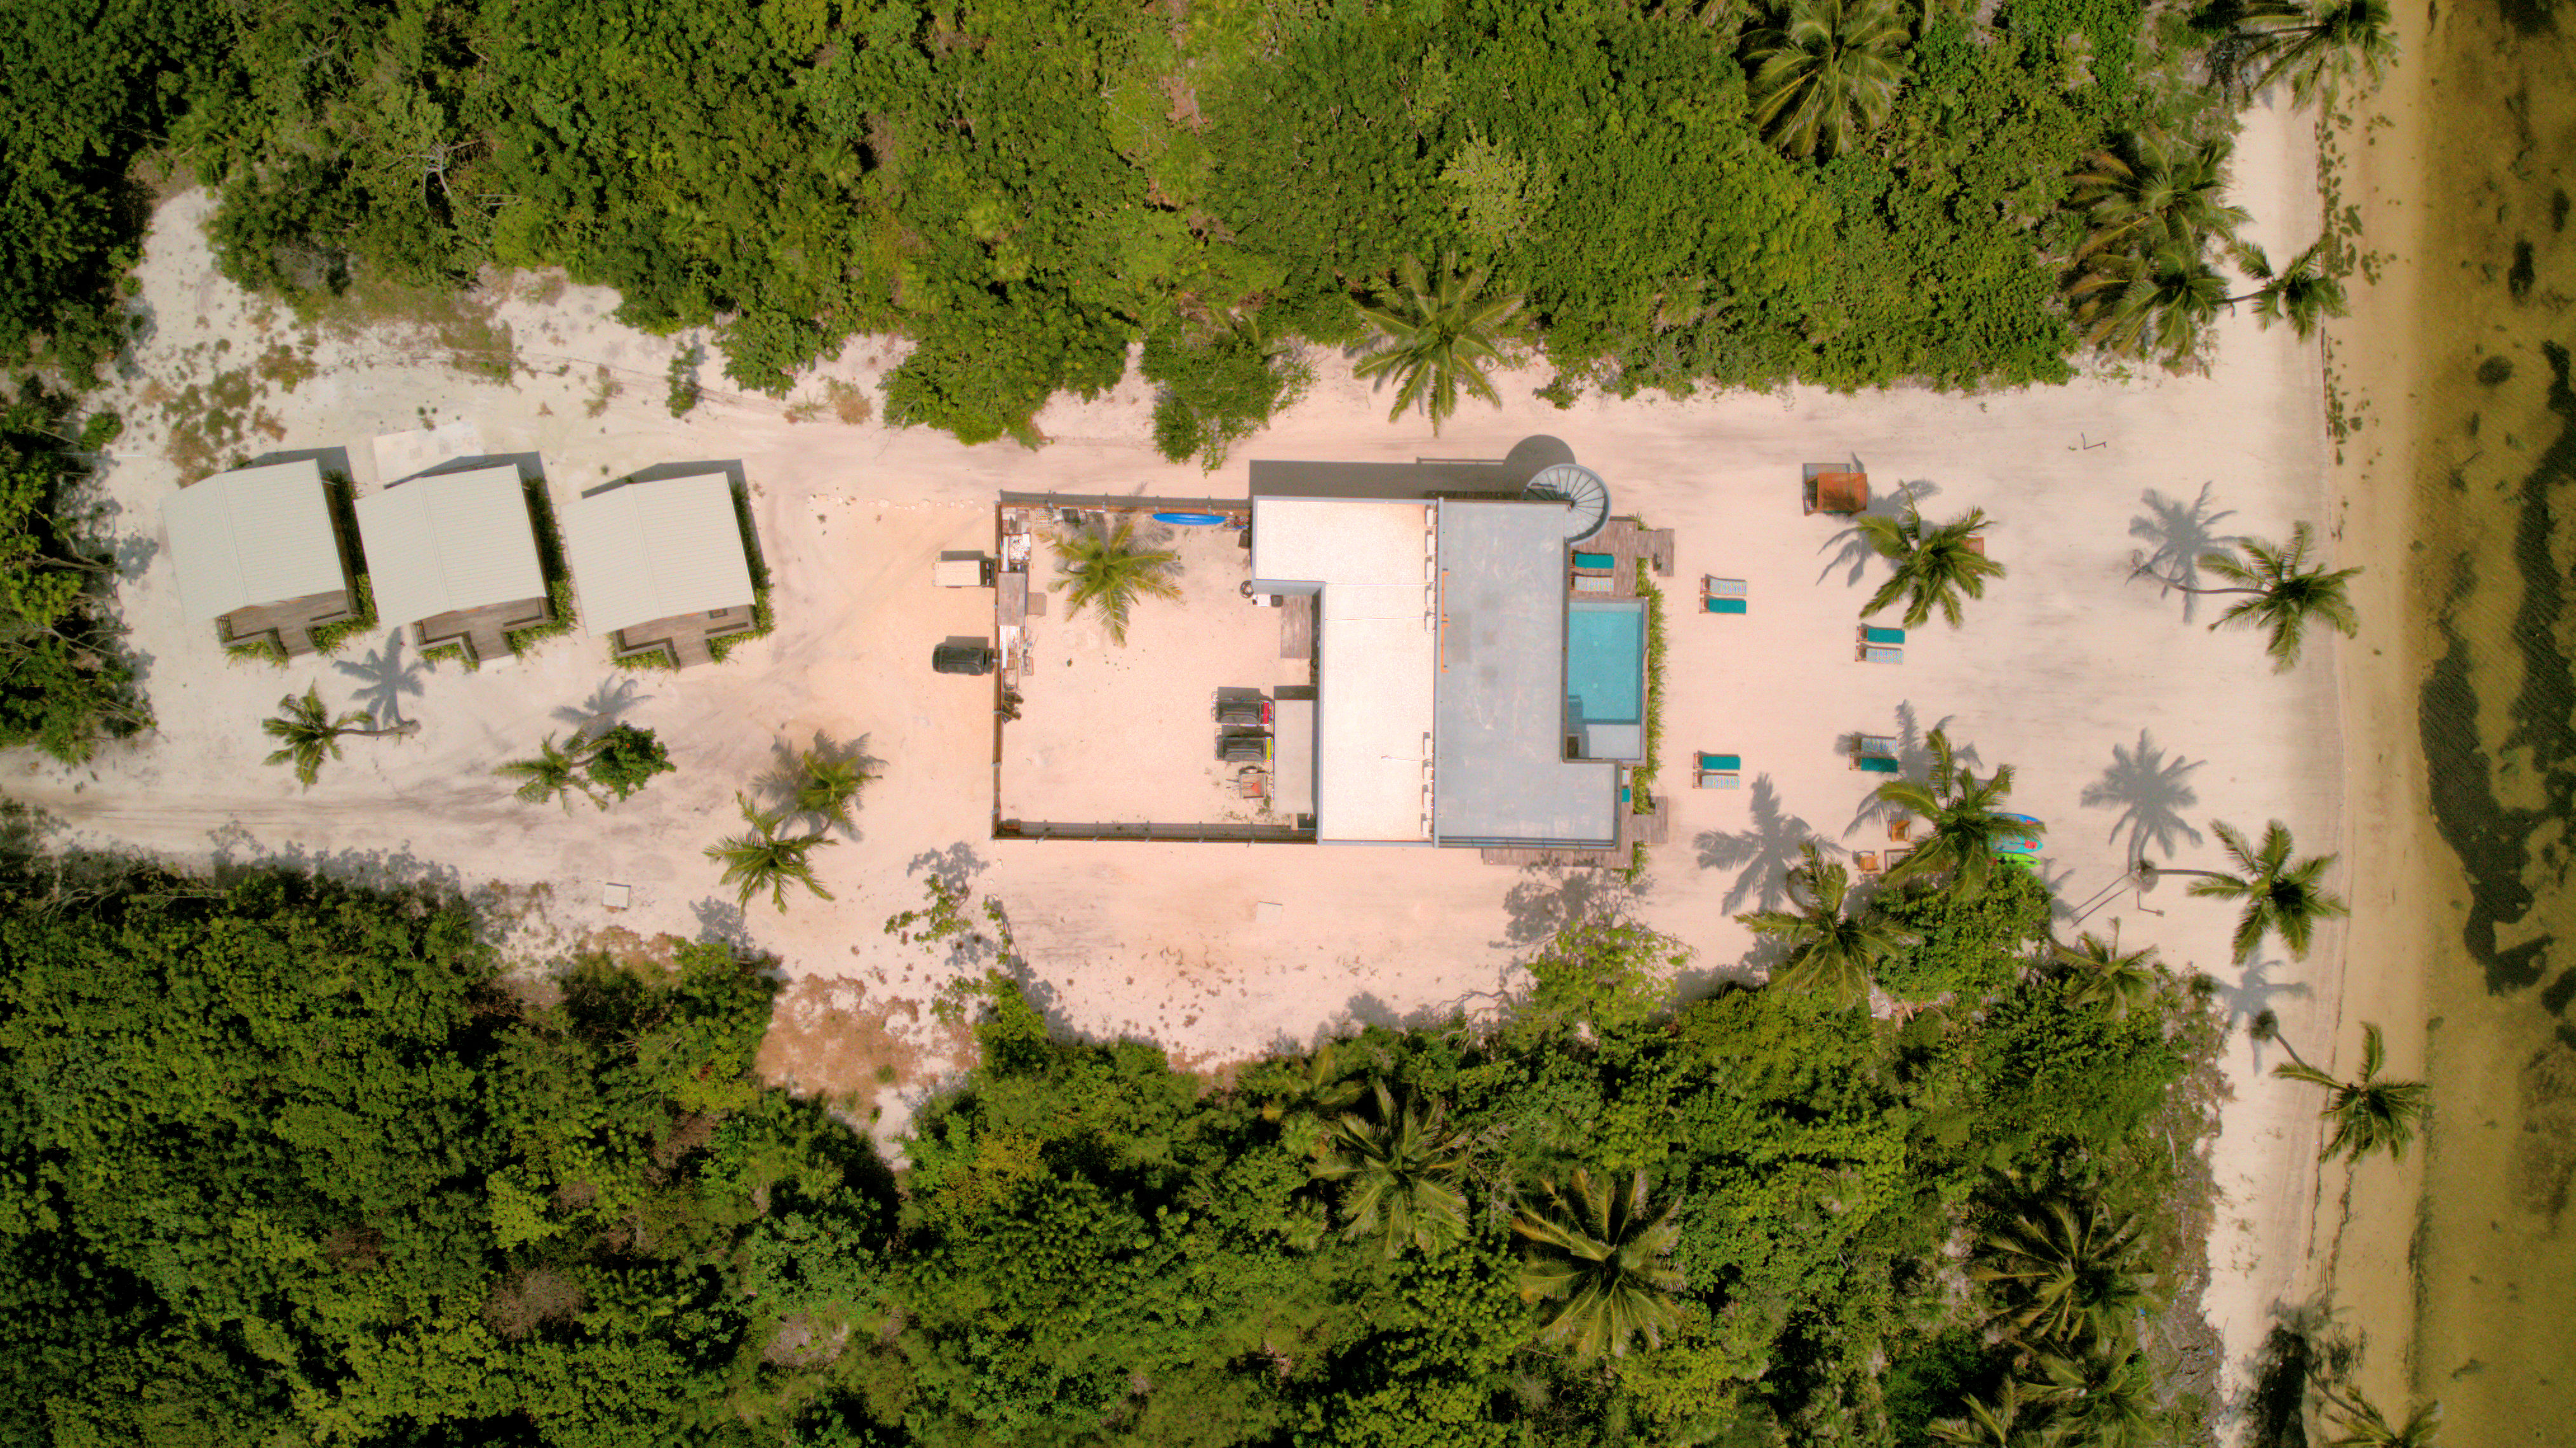 Aerial View showing Casitas